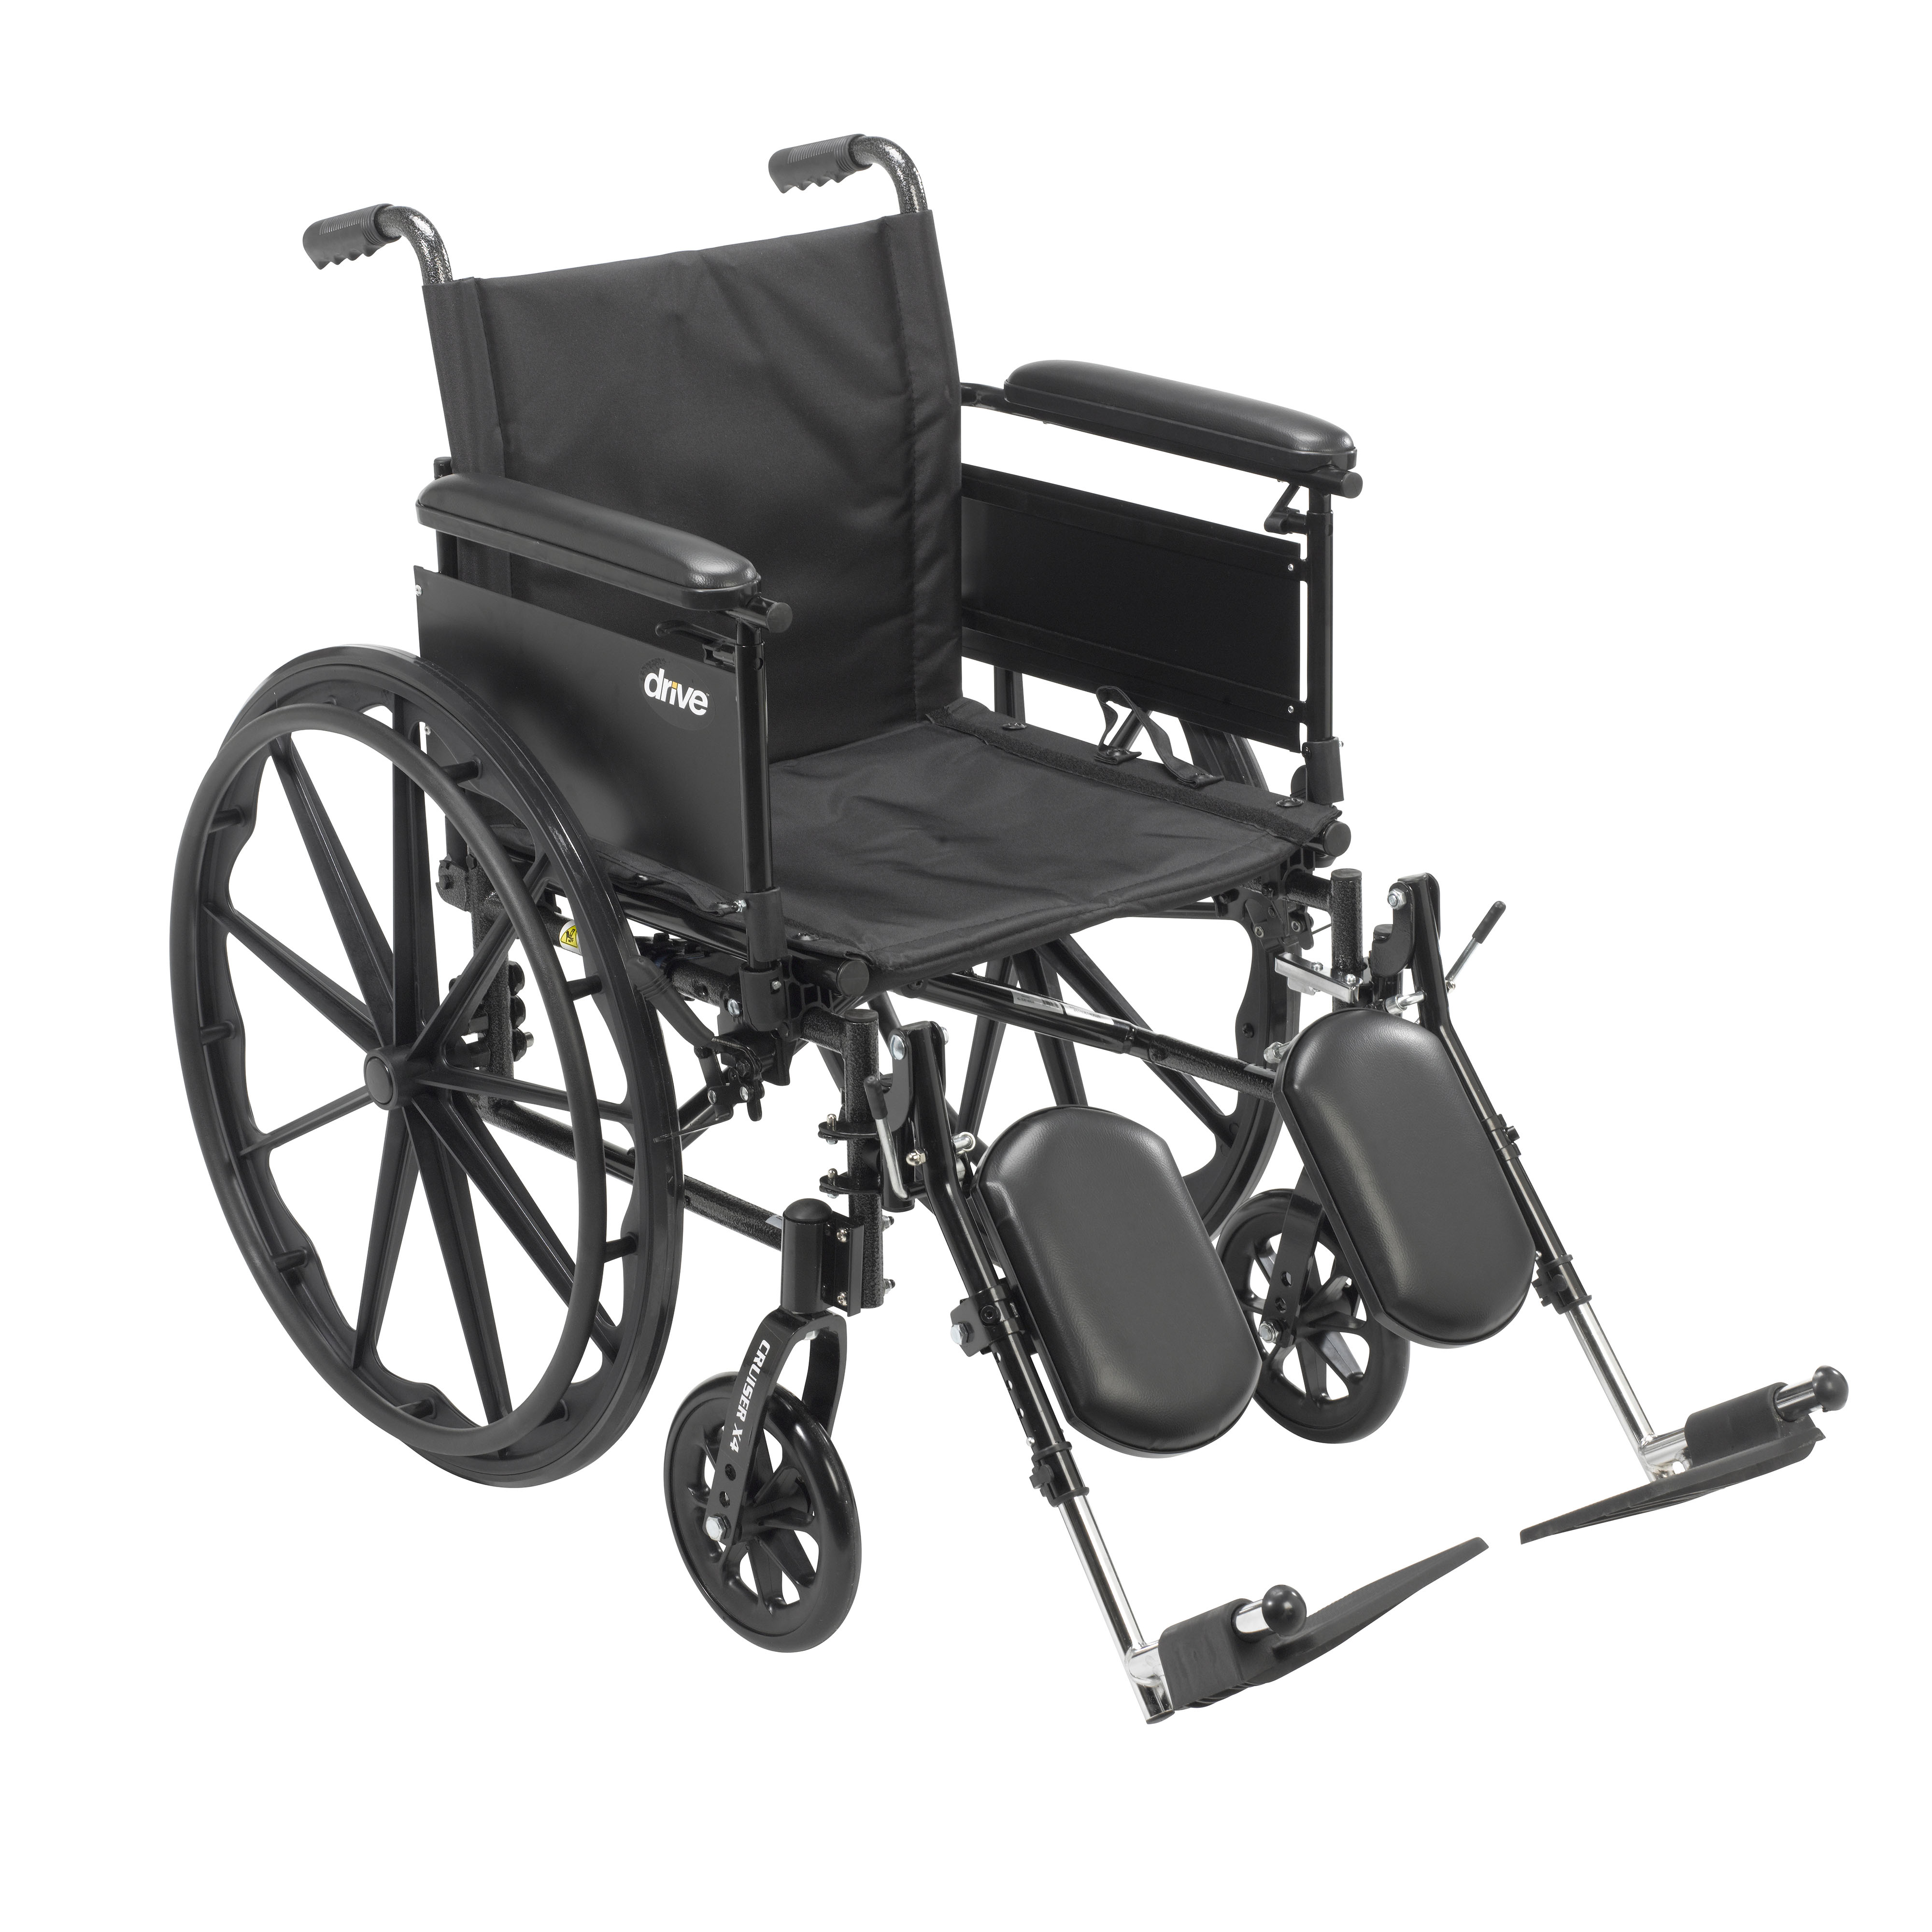 """Cruiser X4 Lightweight Dual Axle Wheelchair with Adjustable Detachable Arms, Full Arms, Elevating Leg Rests, 20"""" Seat"""